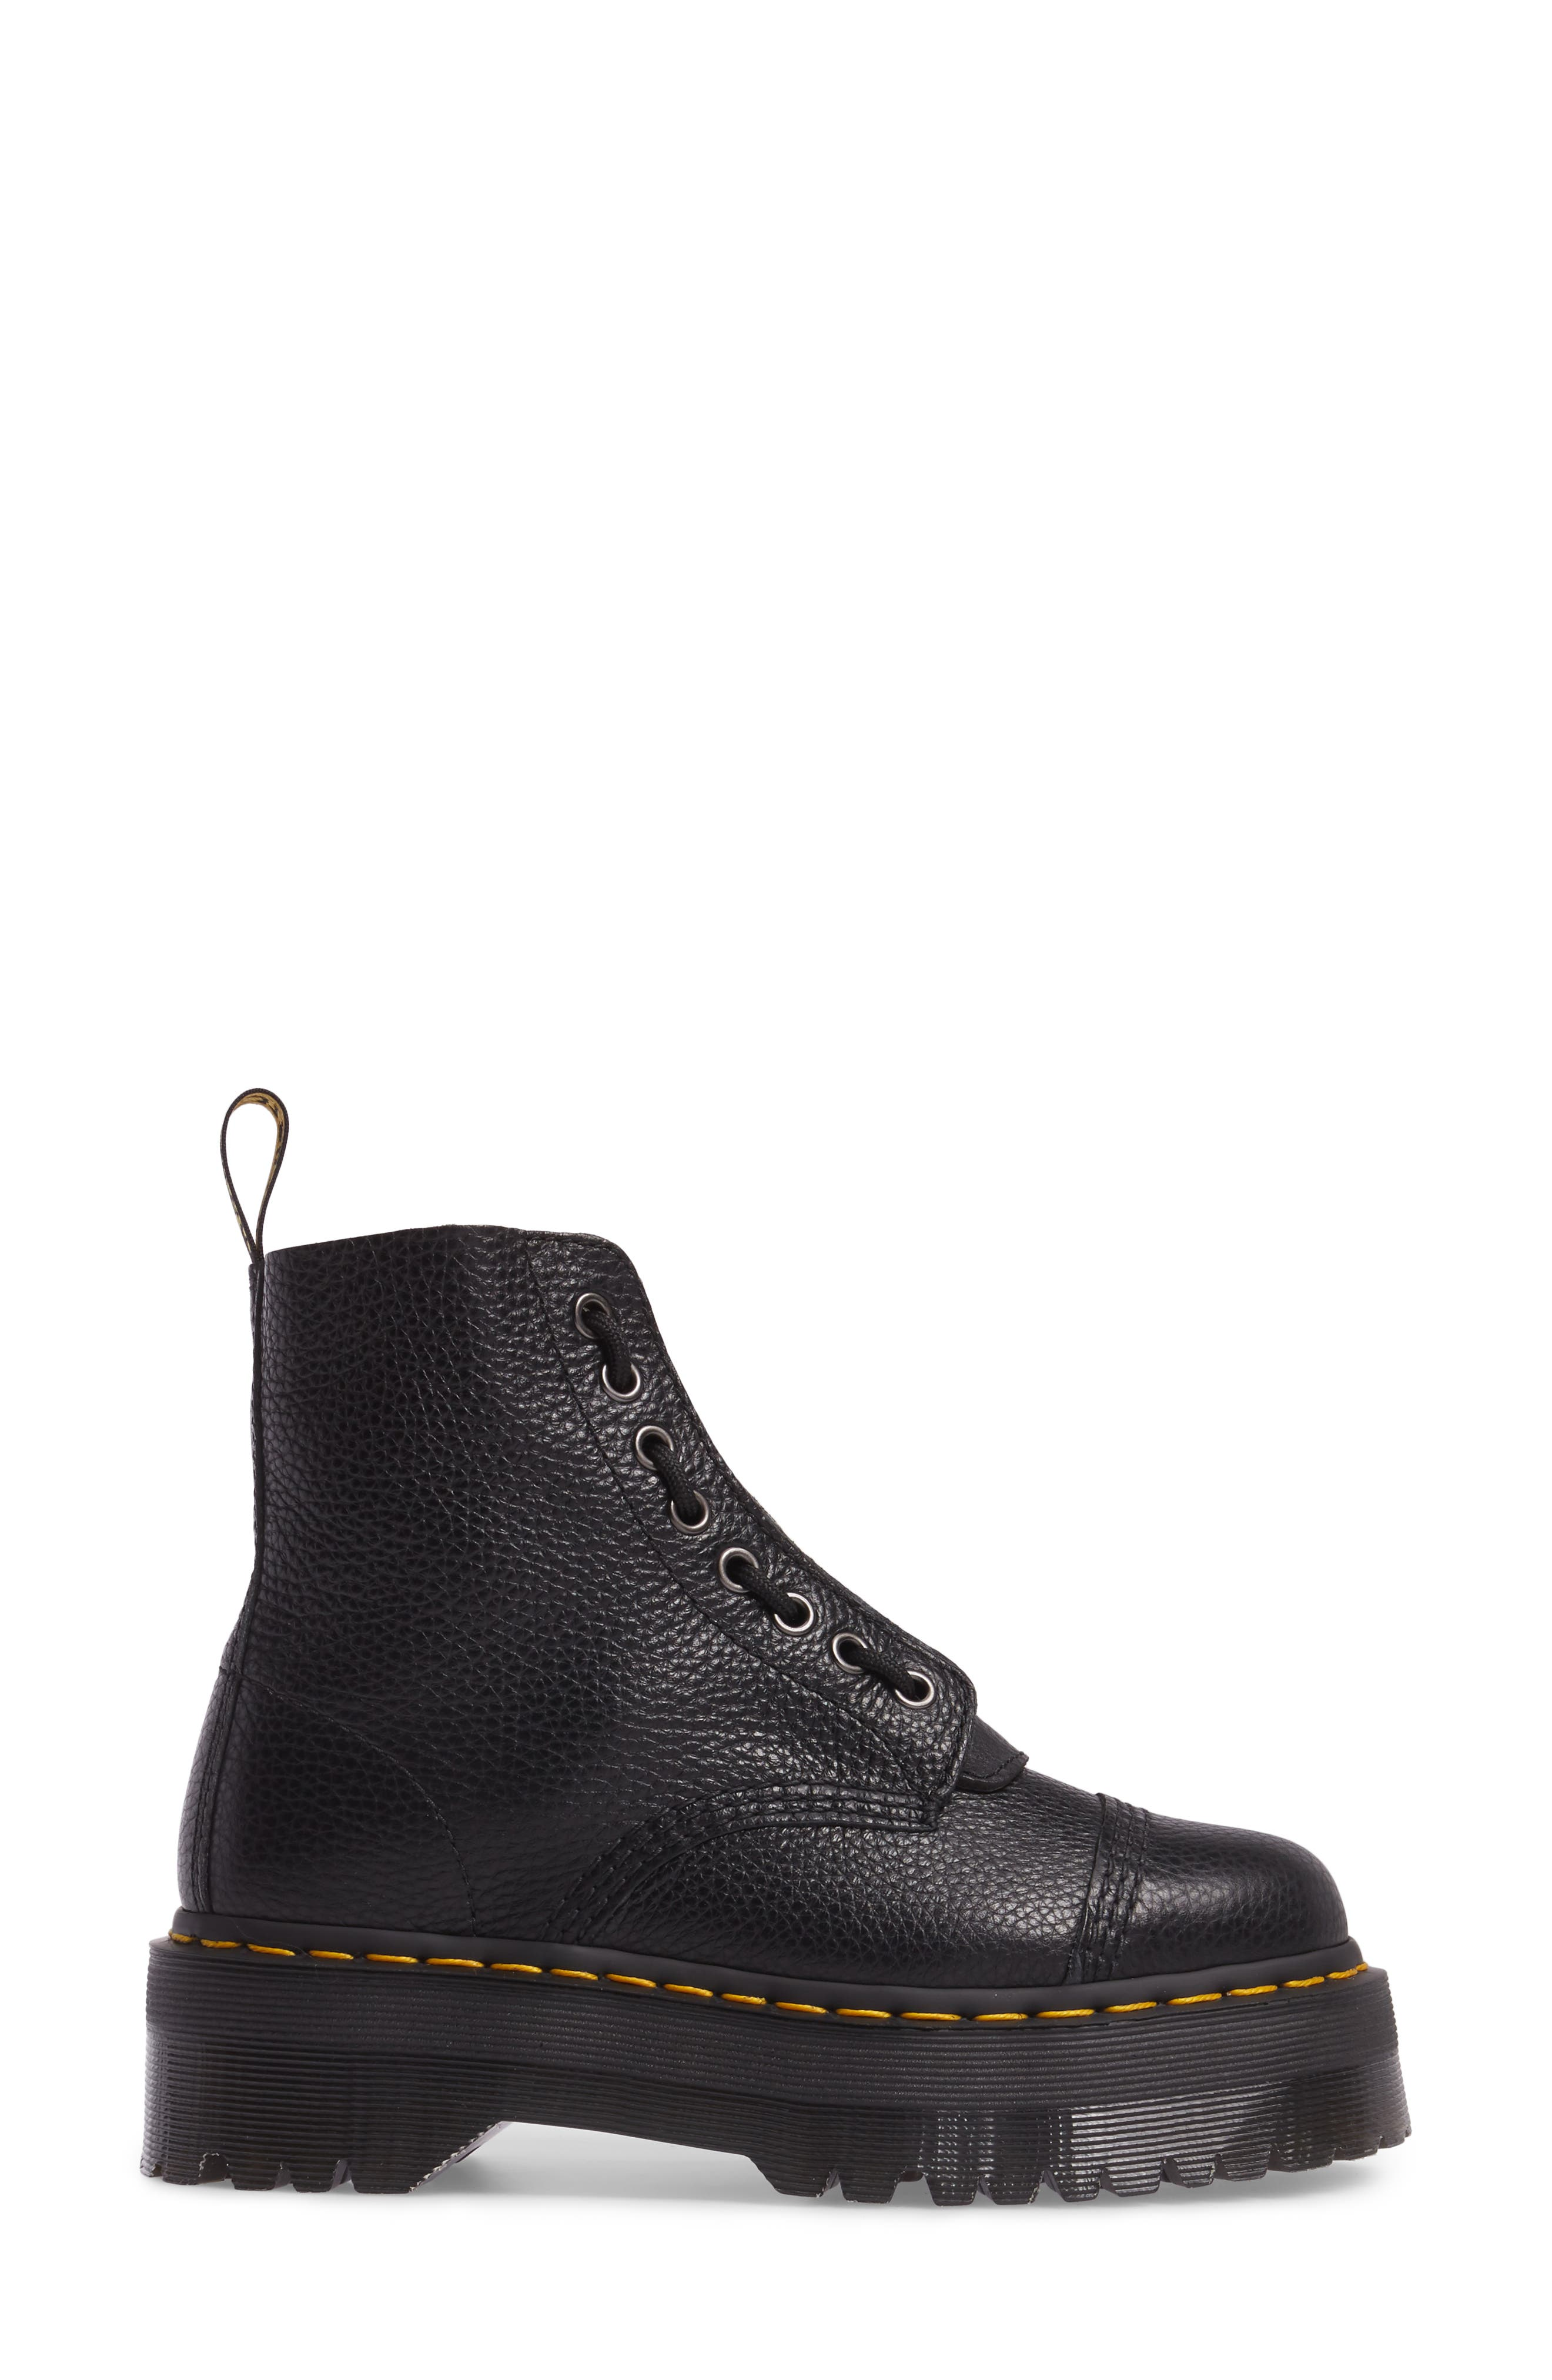 Alternate Image 3  - Dr. Martens Sinclair Bootie (Women)